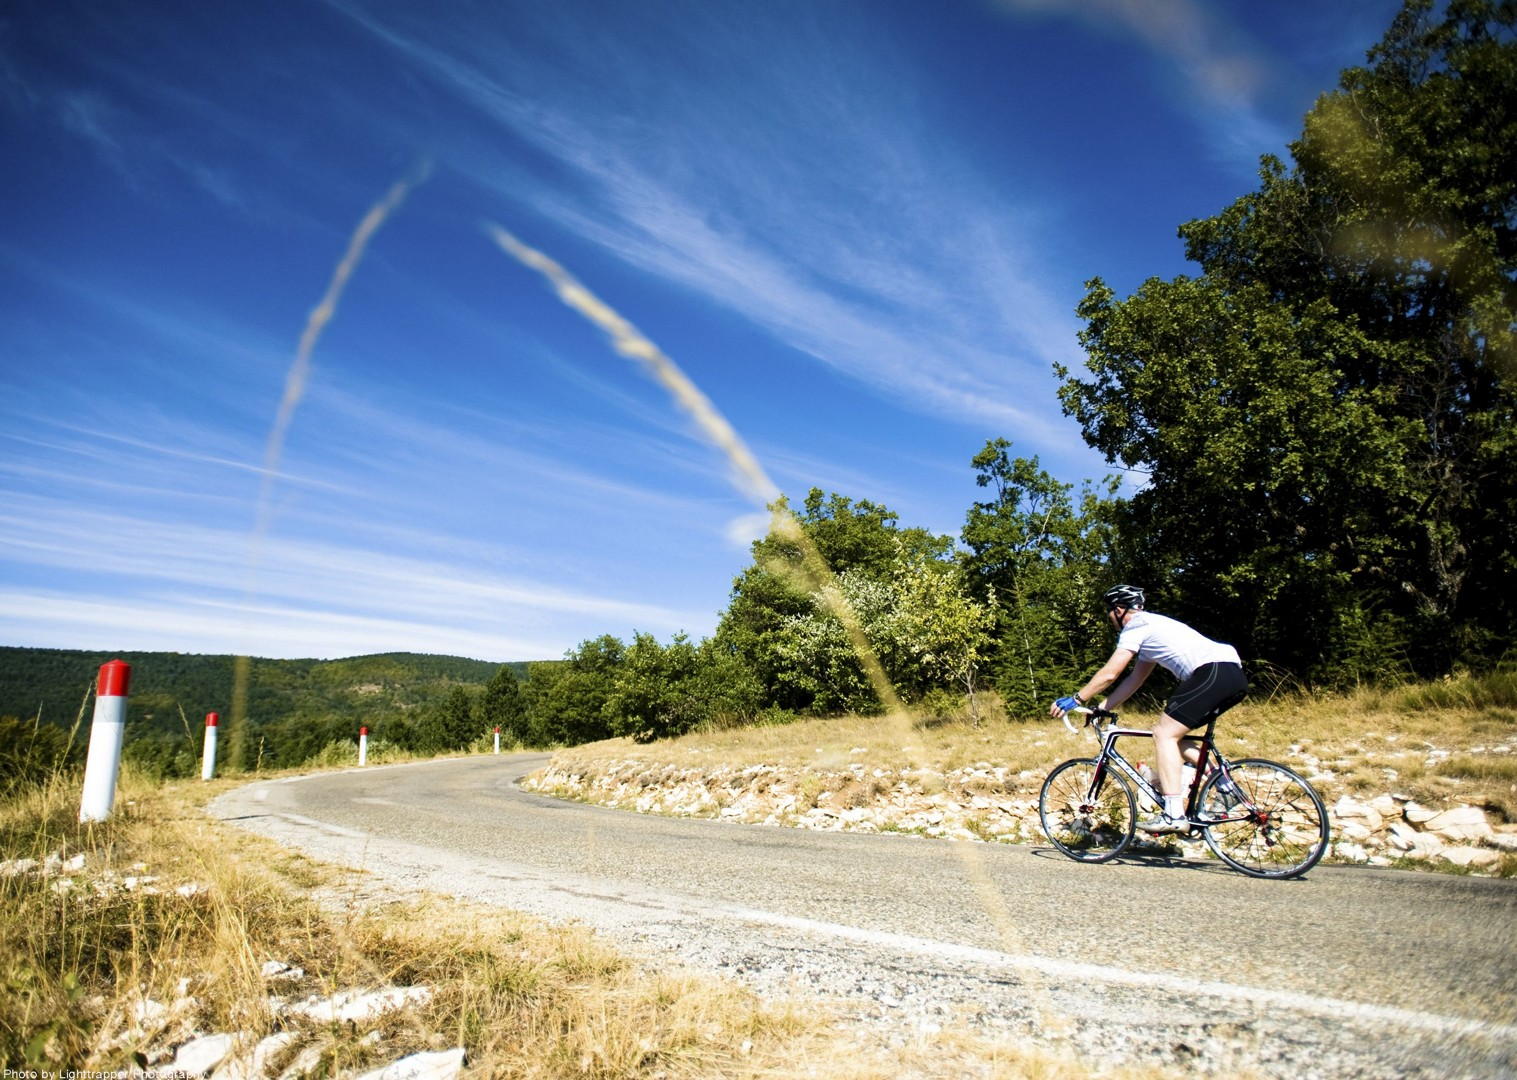 french-countryside-cycling-smooth-tarmac-nature.jpg - NEW! France - Alsace, Burgundy and Beaujolais - Road Cycling